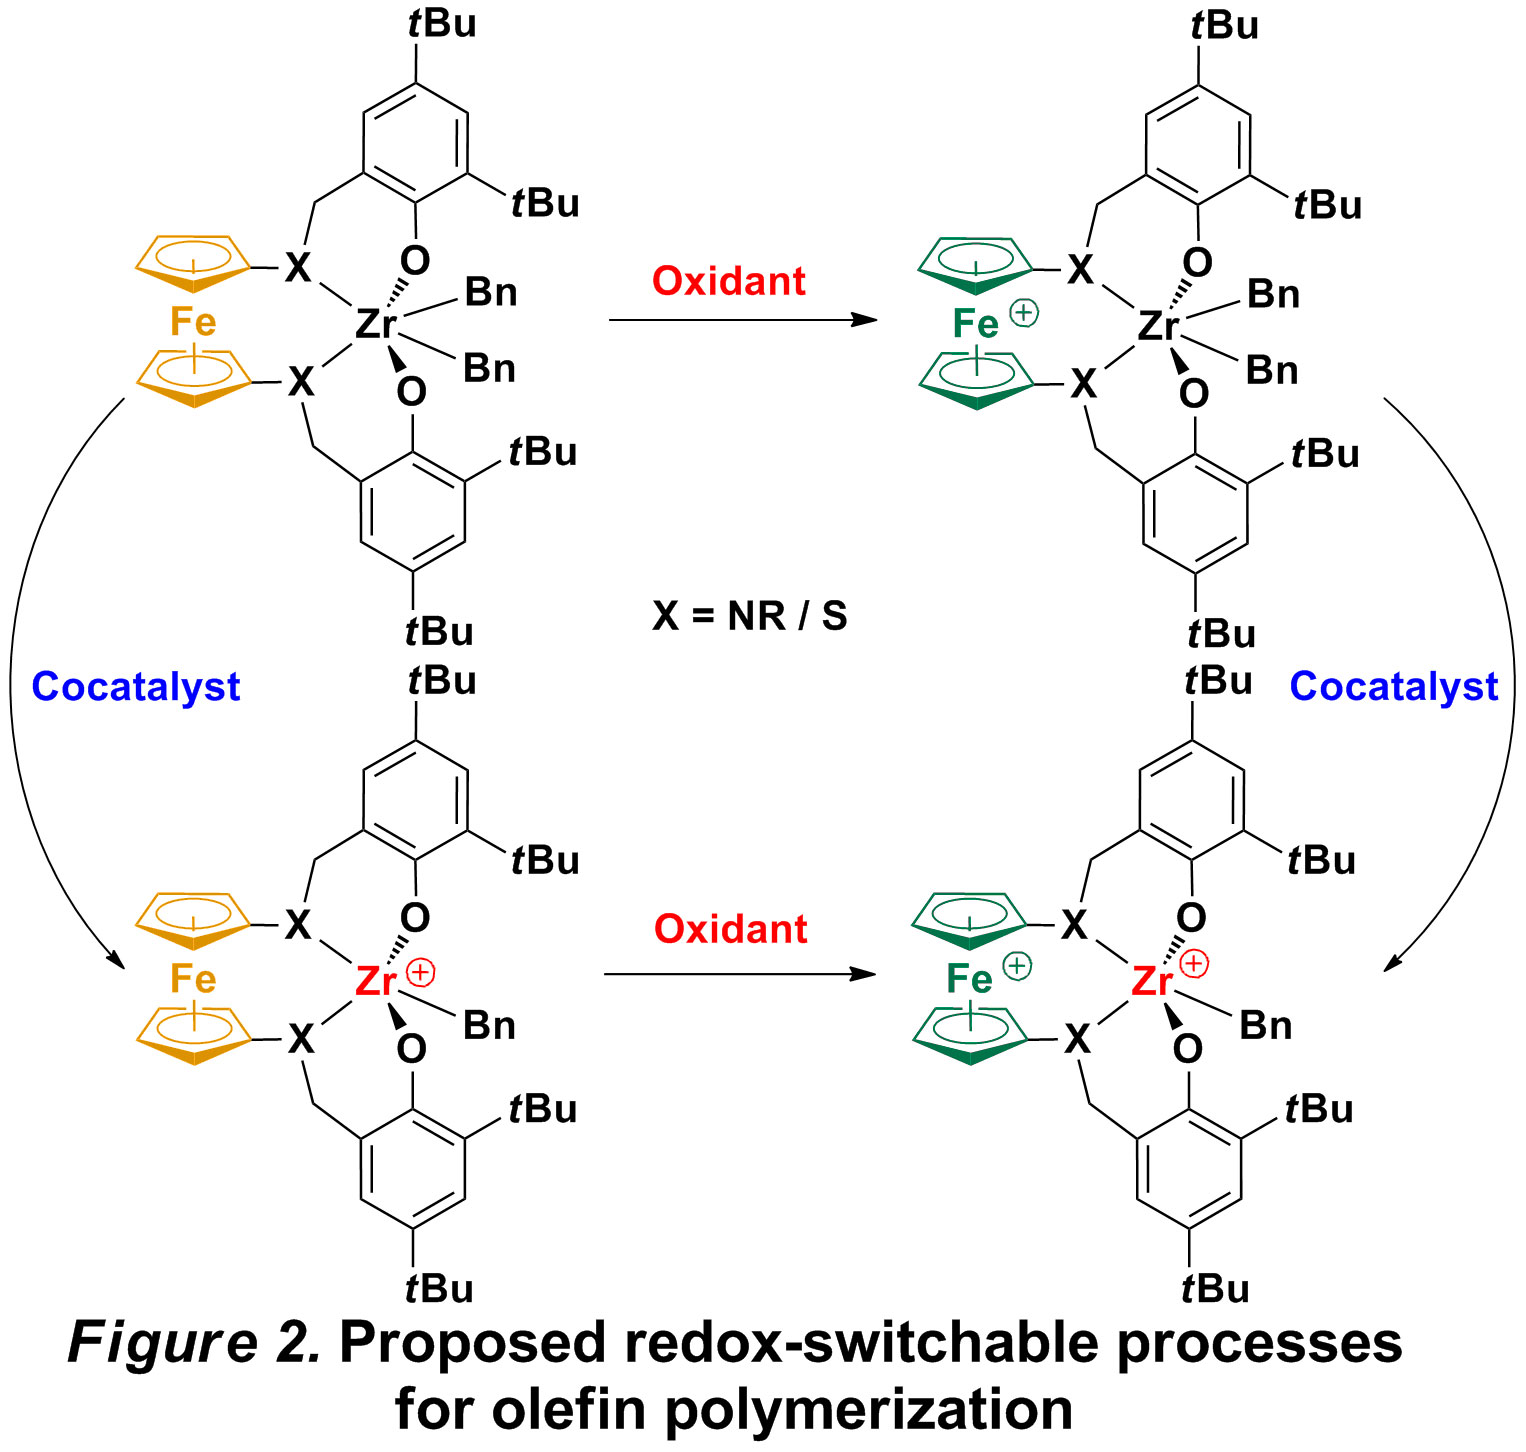 Report: Non-Innocent Ligands as a Redox Switch for